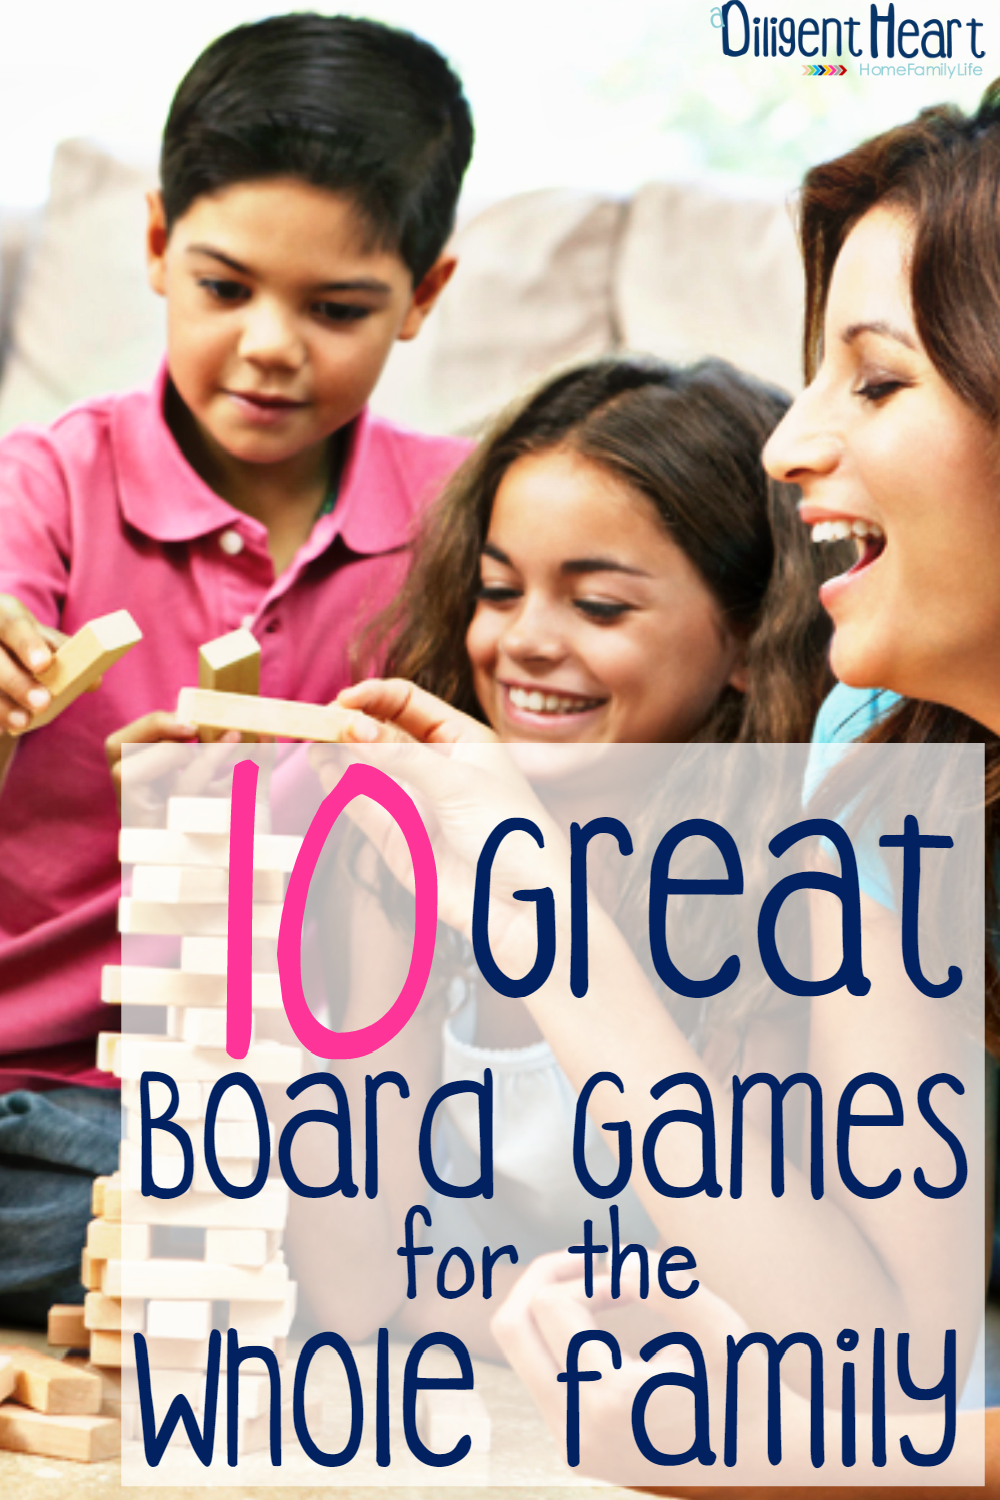 Does your family love a good game night? Our family does! If you're looking to add some board games to your family game library, check some of these out! 10 Great Board Games for the Whole Family   adiligentheart.com